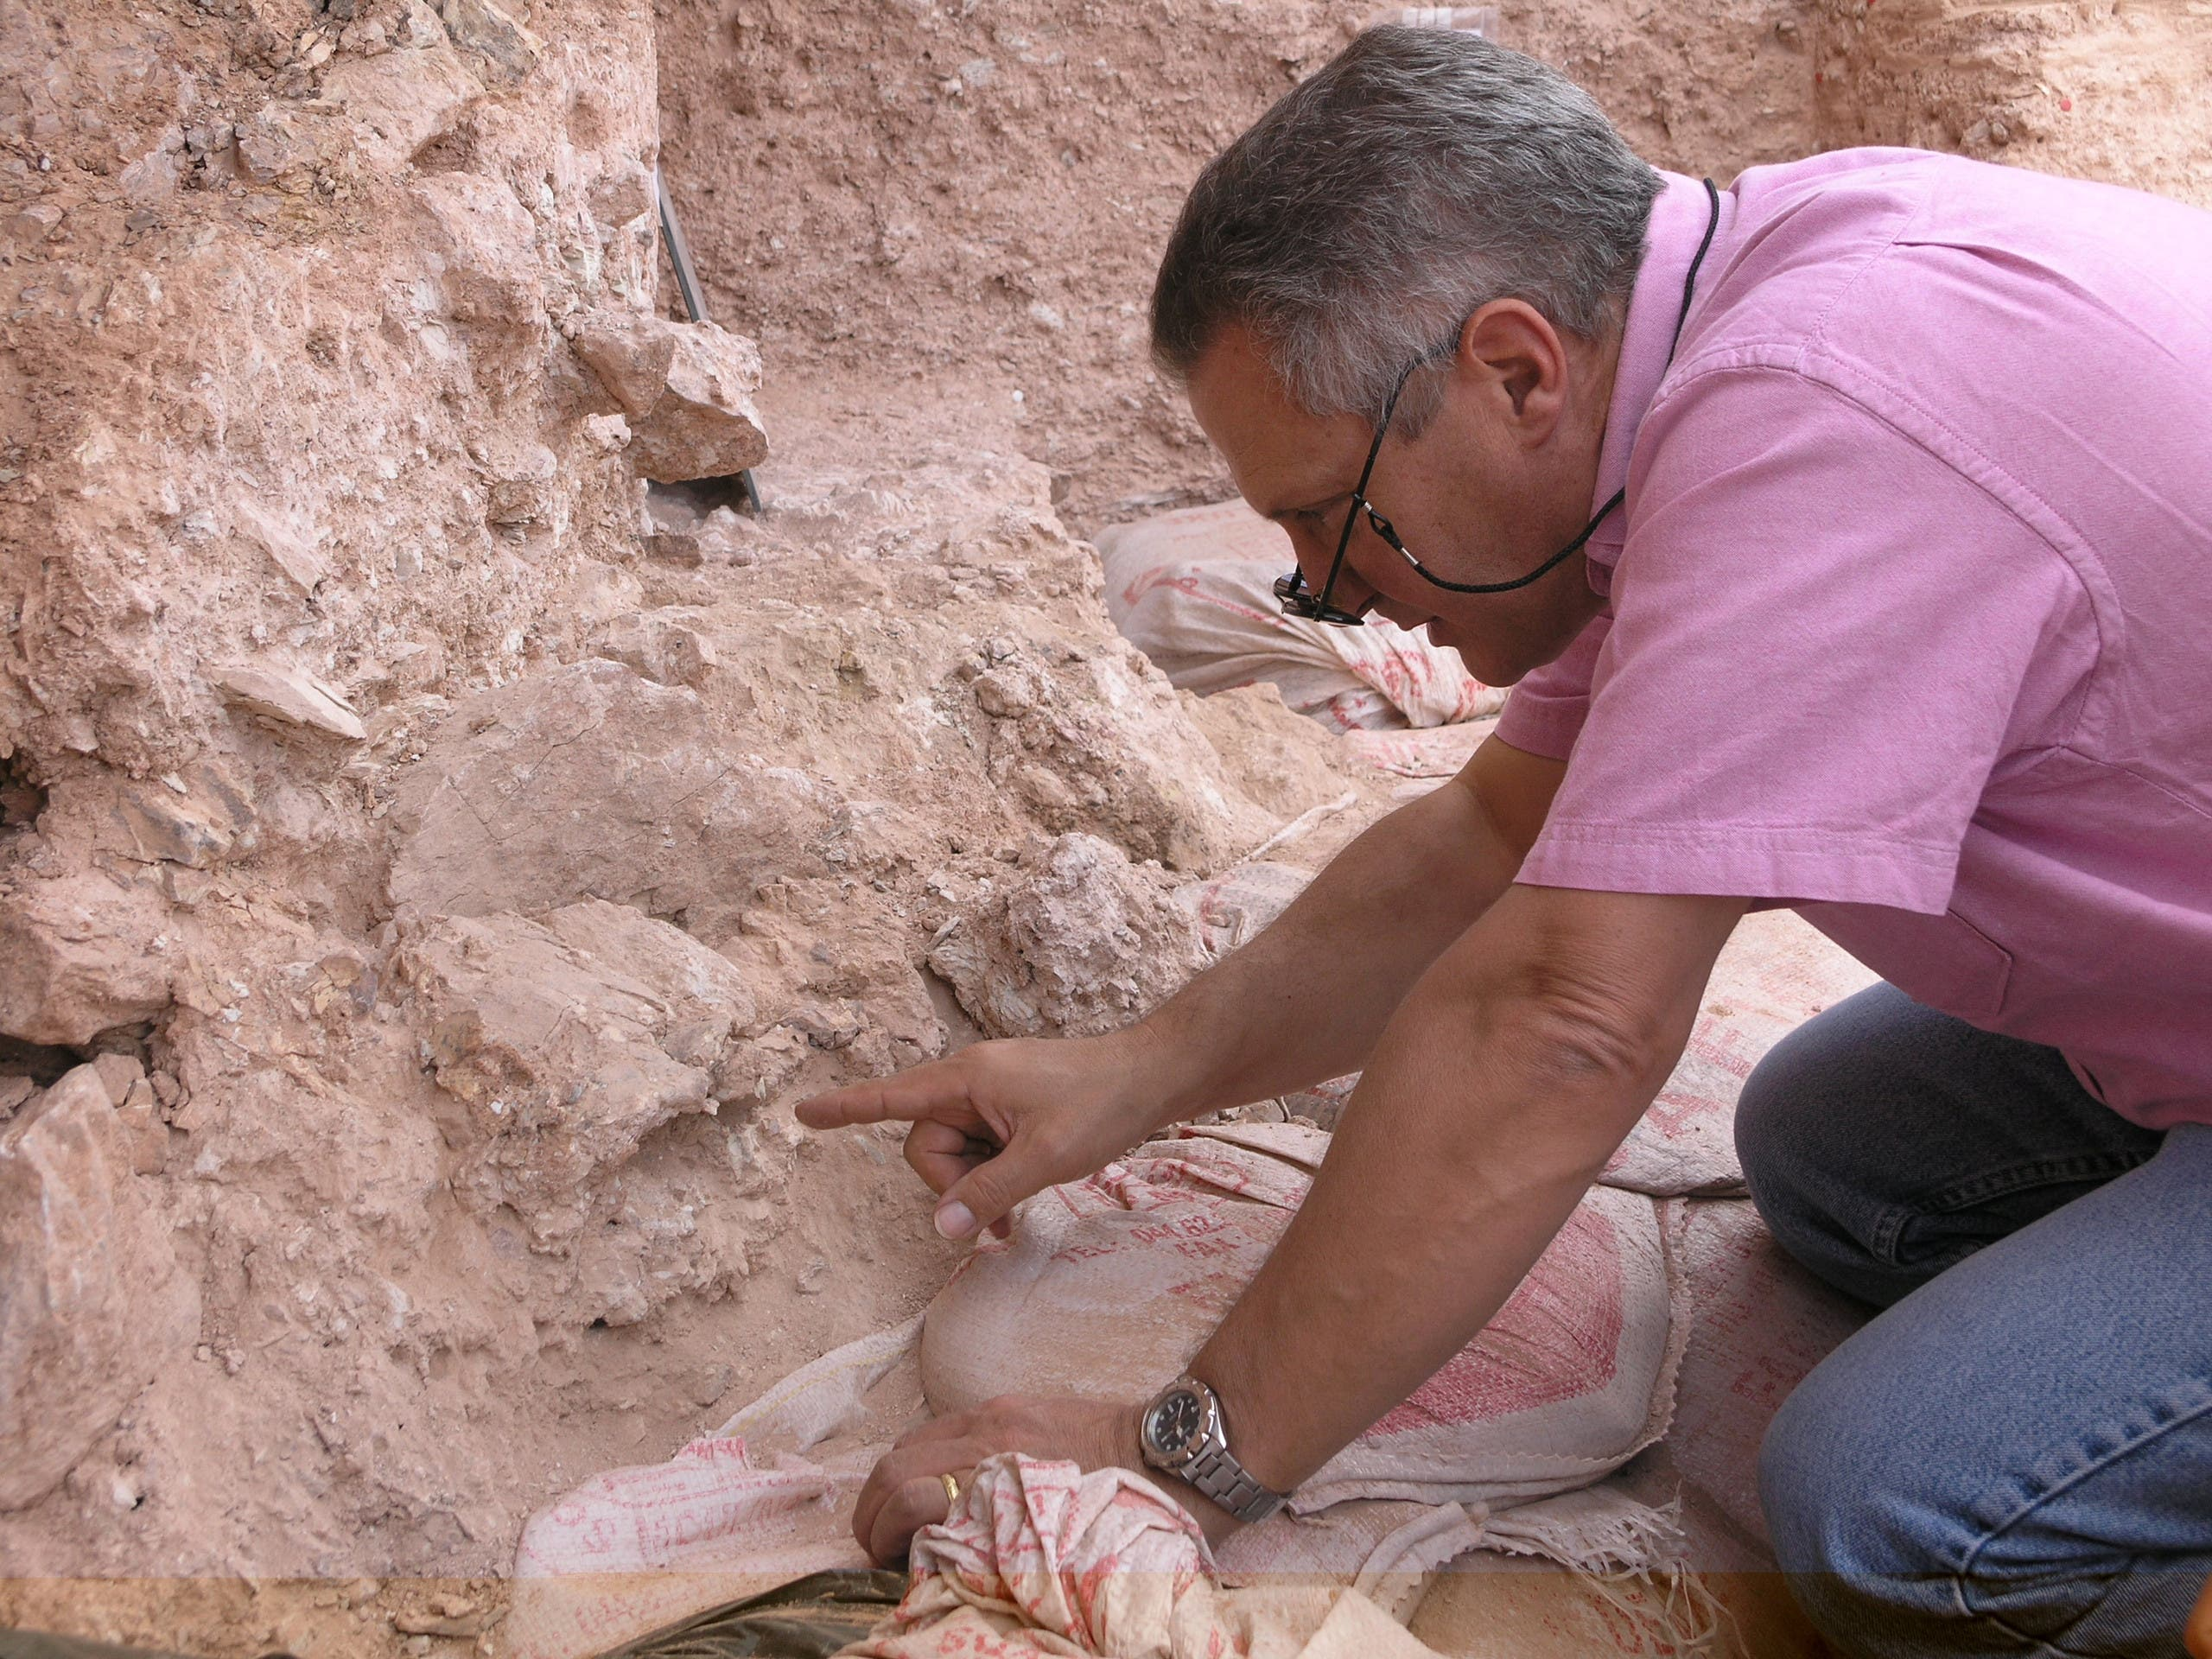 Dr. Jean-Jacques Hublin points out the new finds at Jebel Irhoud in Morocco in this undated handout photo obtained by Reuters June 7, 2017.